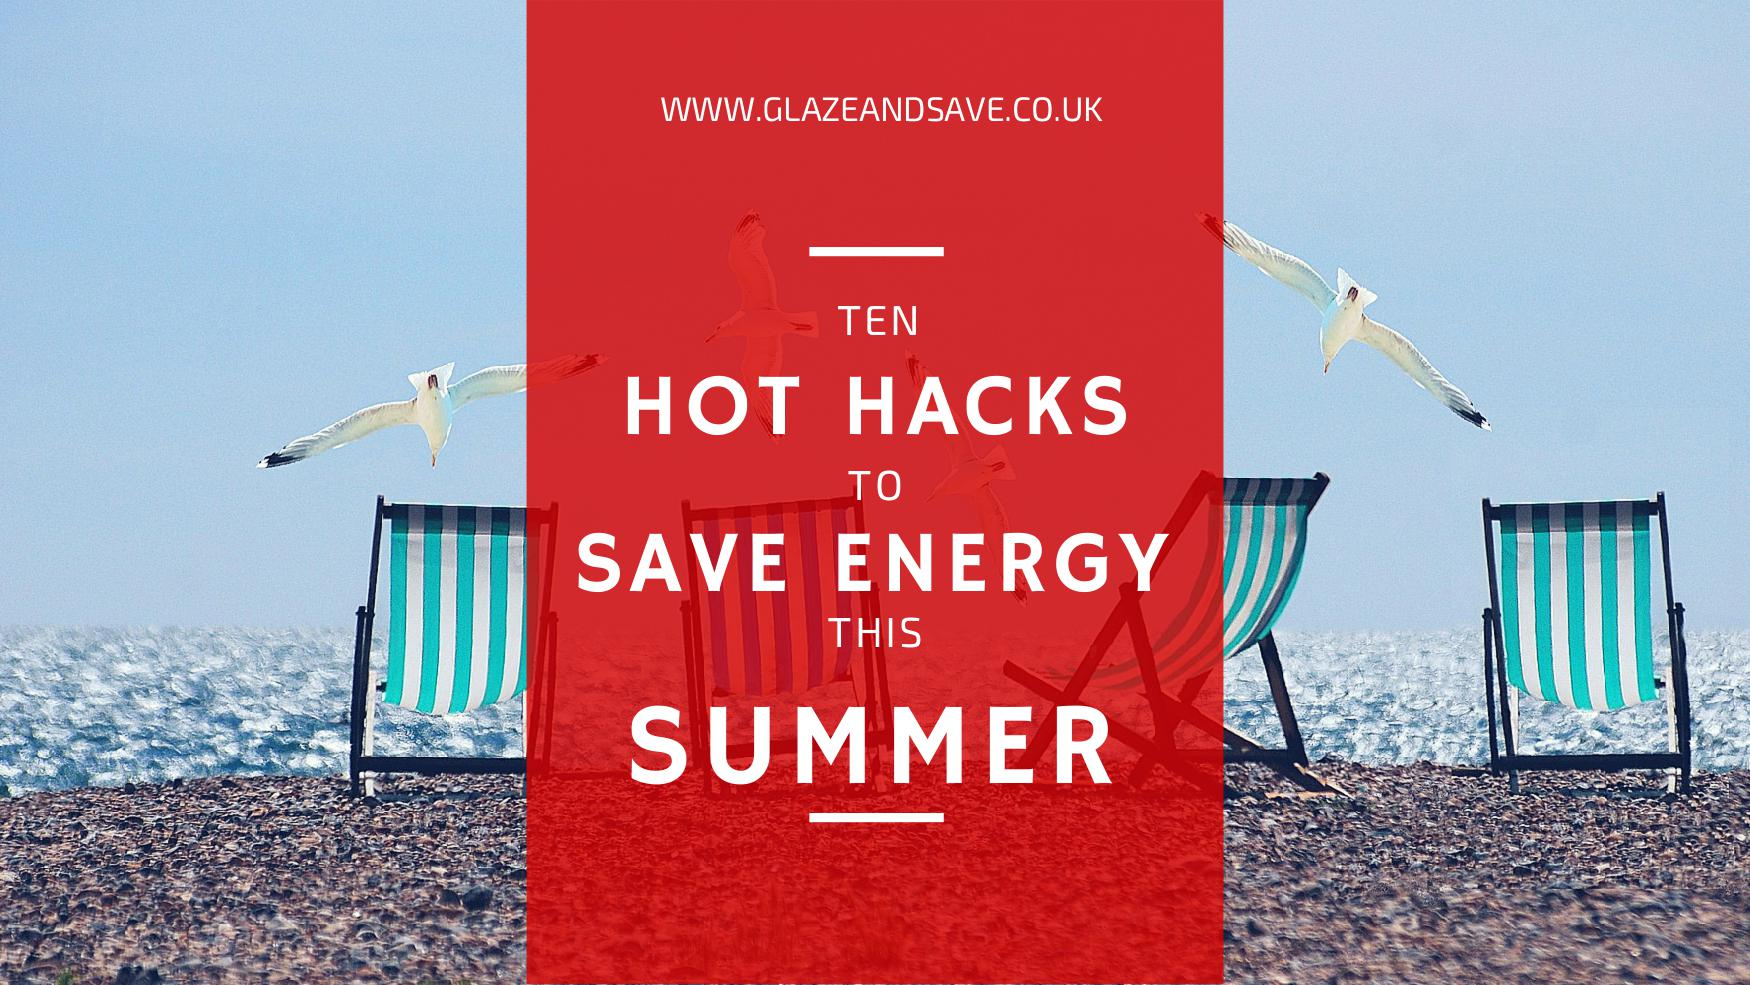 Ten Hot Hacks To Save Energy This Sumer